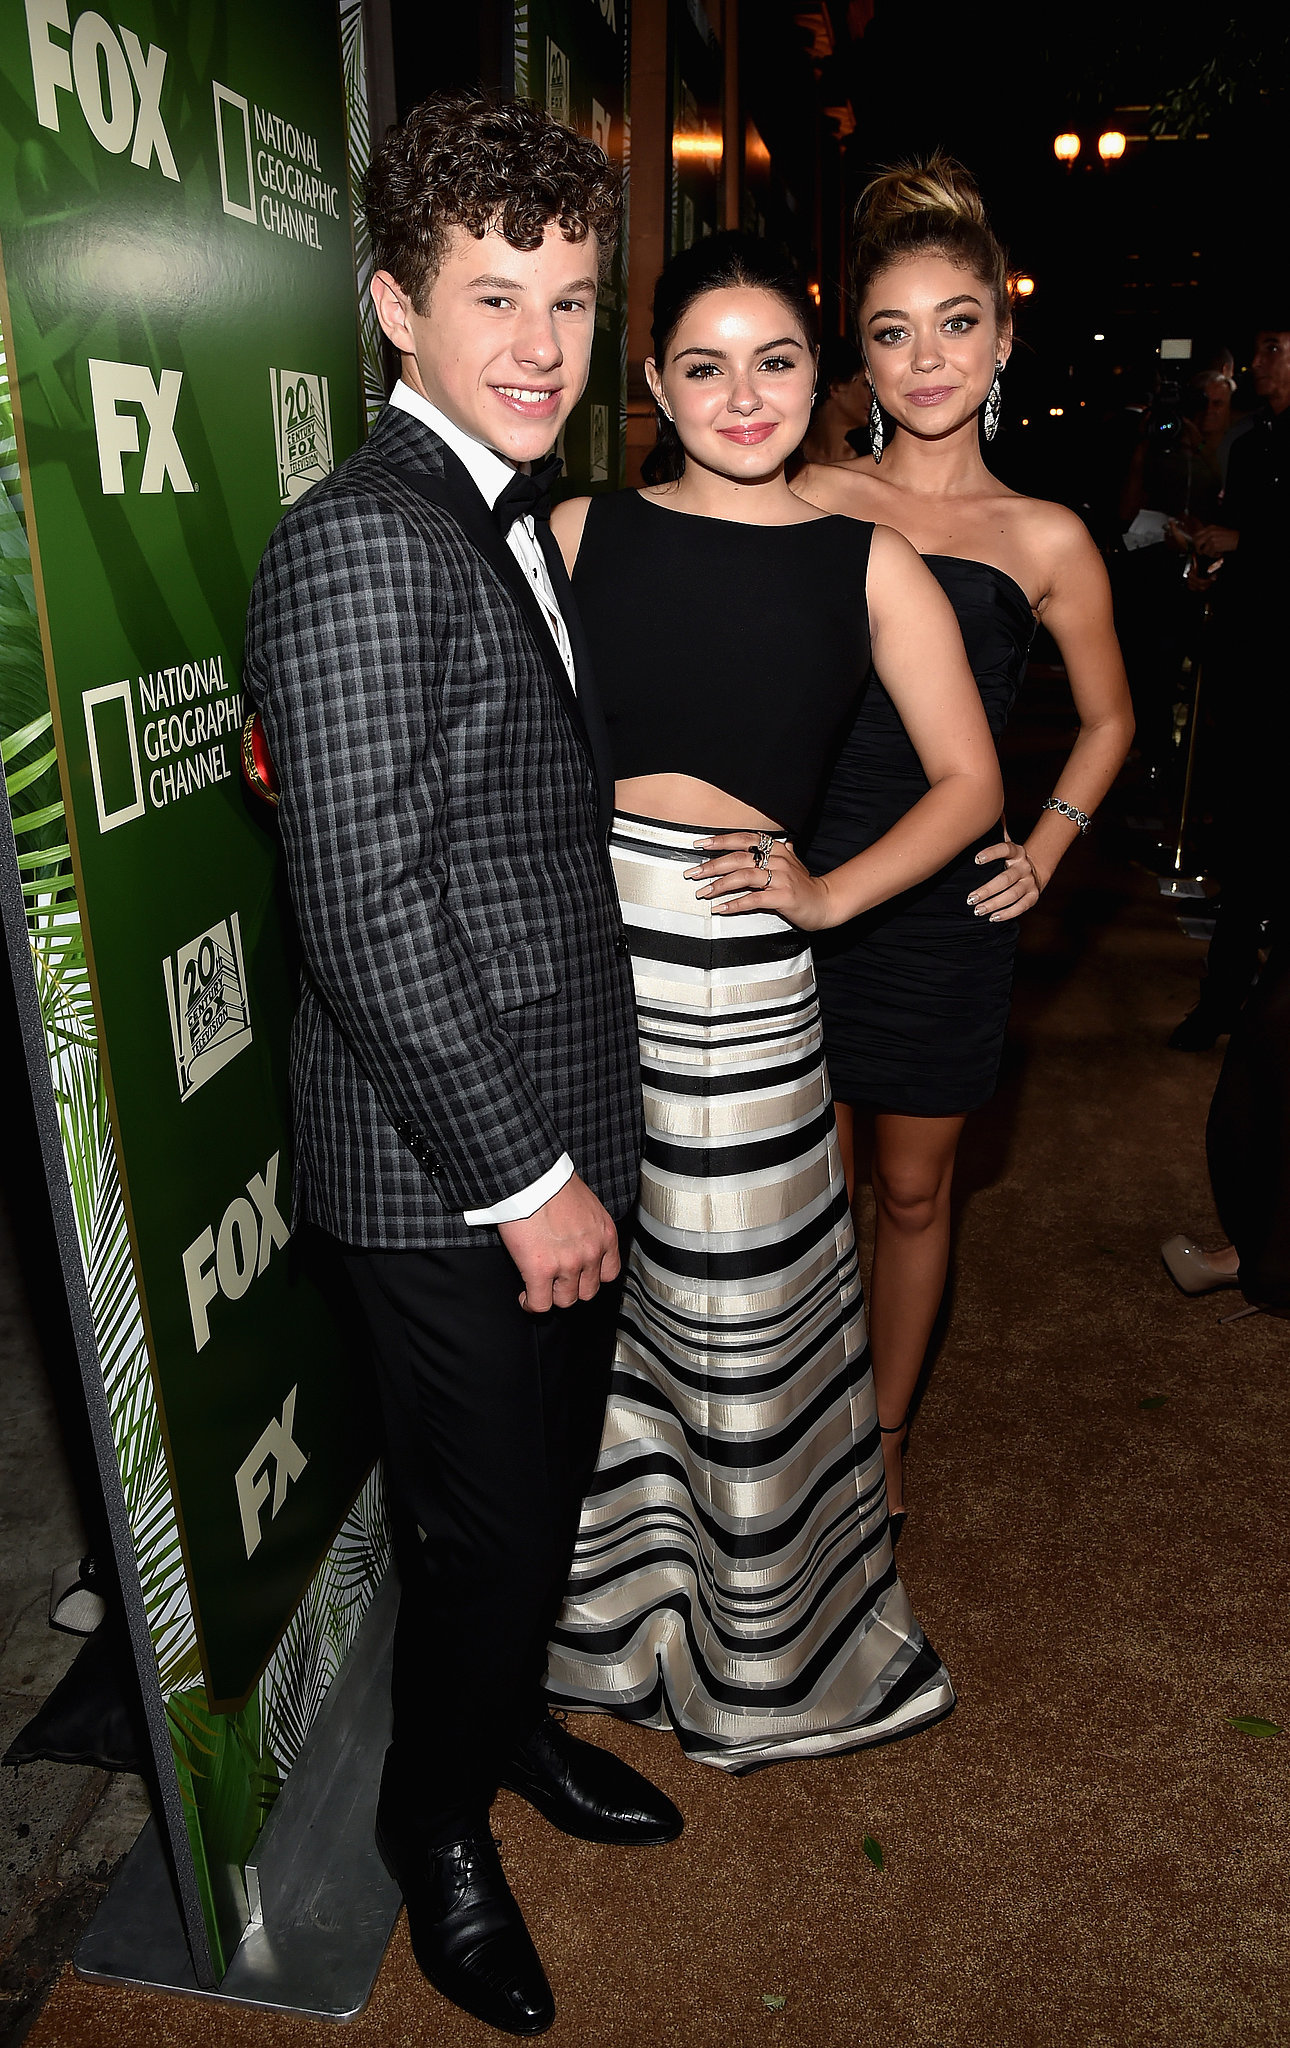 Modern Family's Nolan Gould, Ariel Winter, and Sarah Hyland took pictures together.